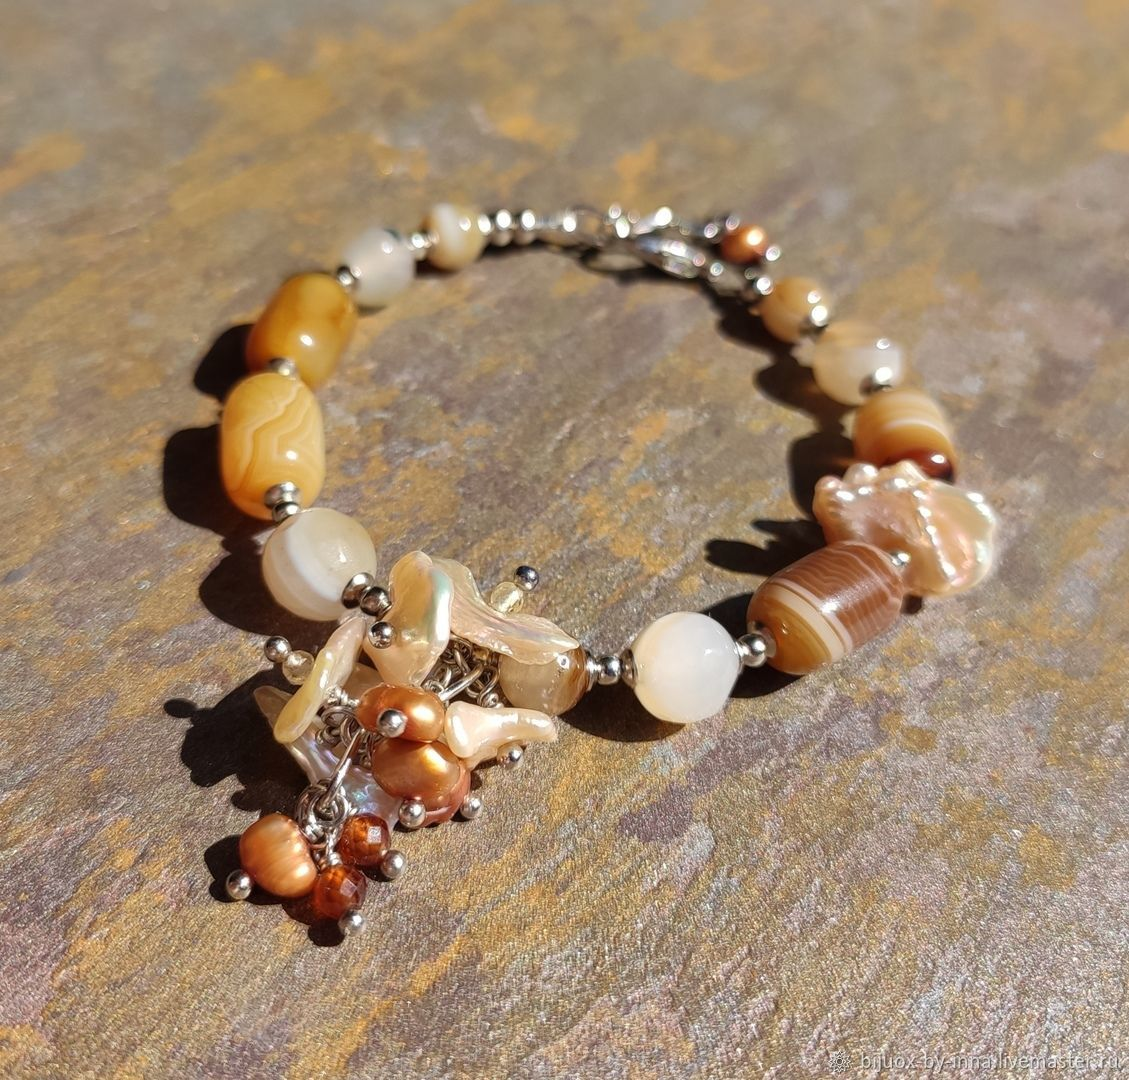 Bracelet with agate and Kesha pearls. Bracelet with natural stones, Bead bracelet, Permian,  Фото №1